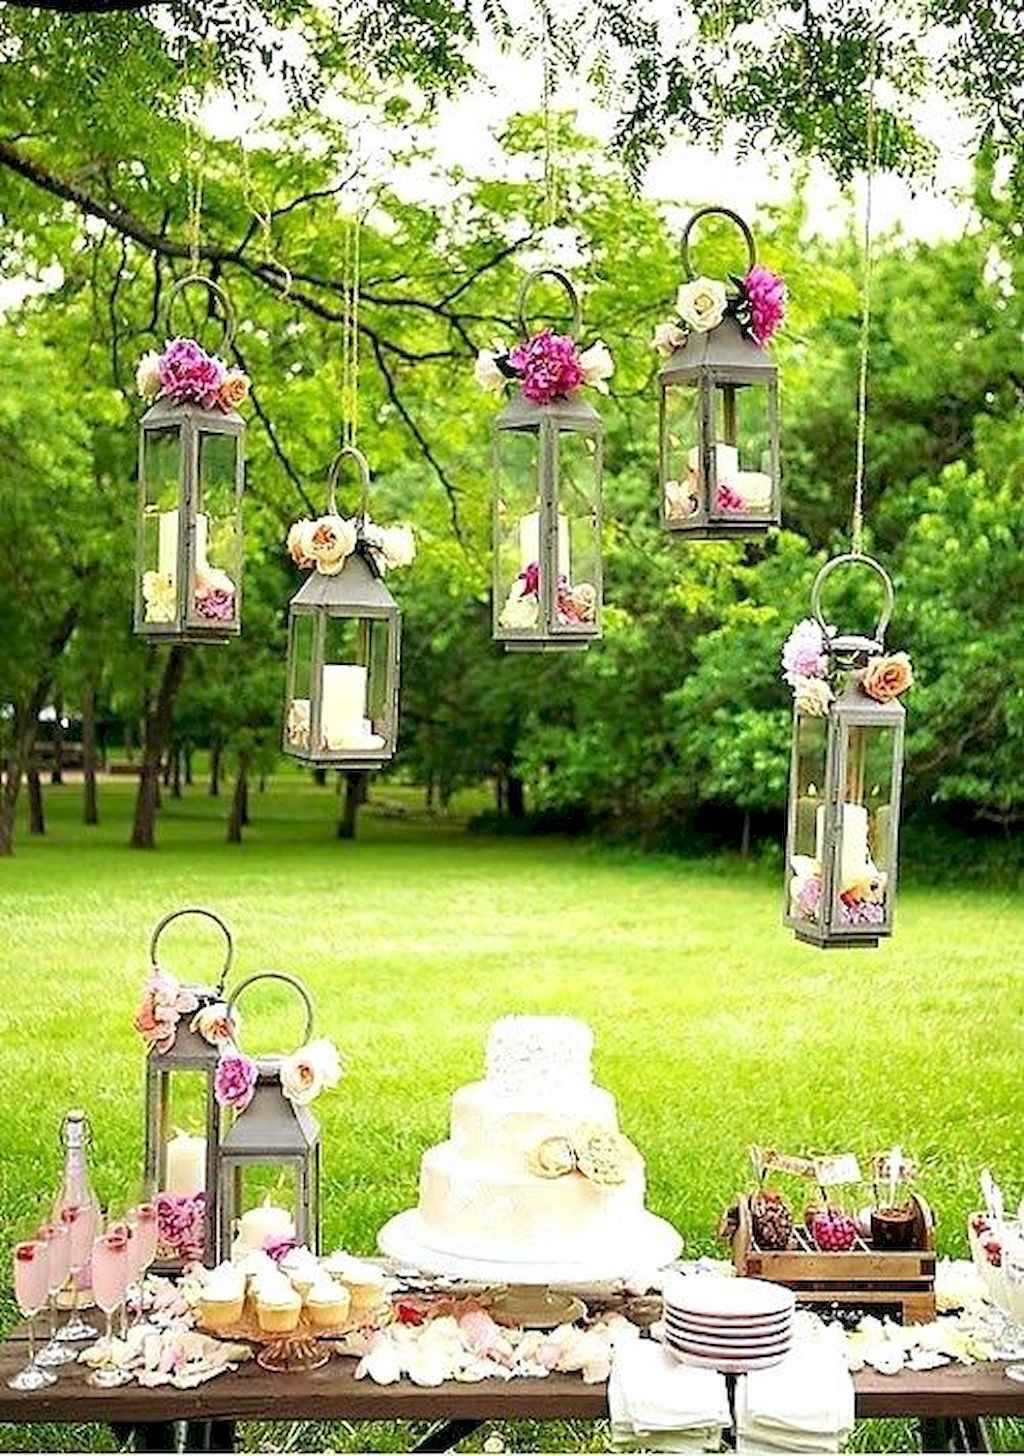 37 Excellent DIY Mosaic Garden Decoration Ideas for Front and Backyard Landscaping